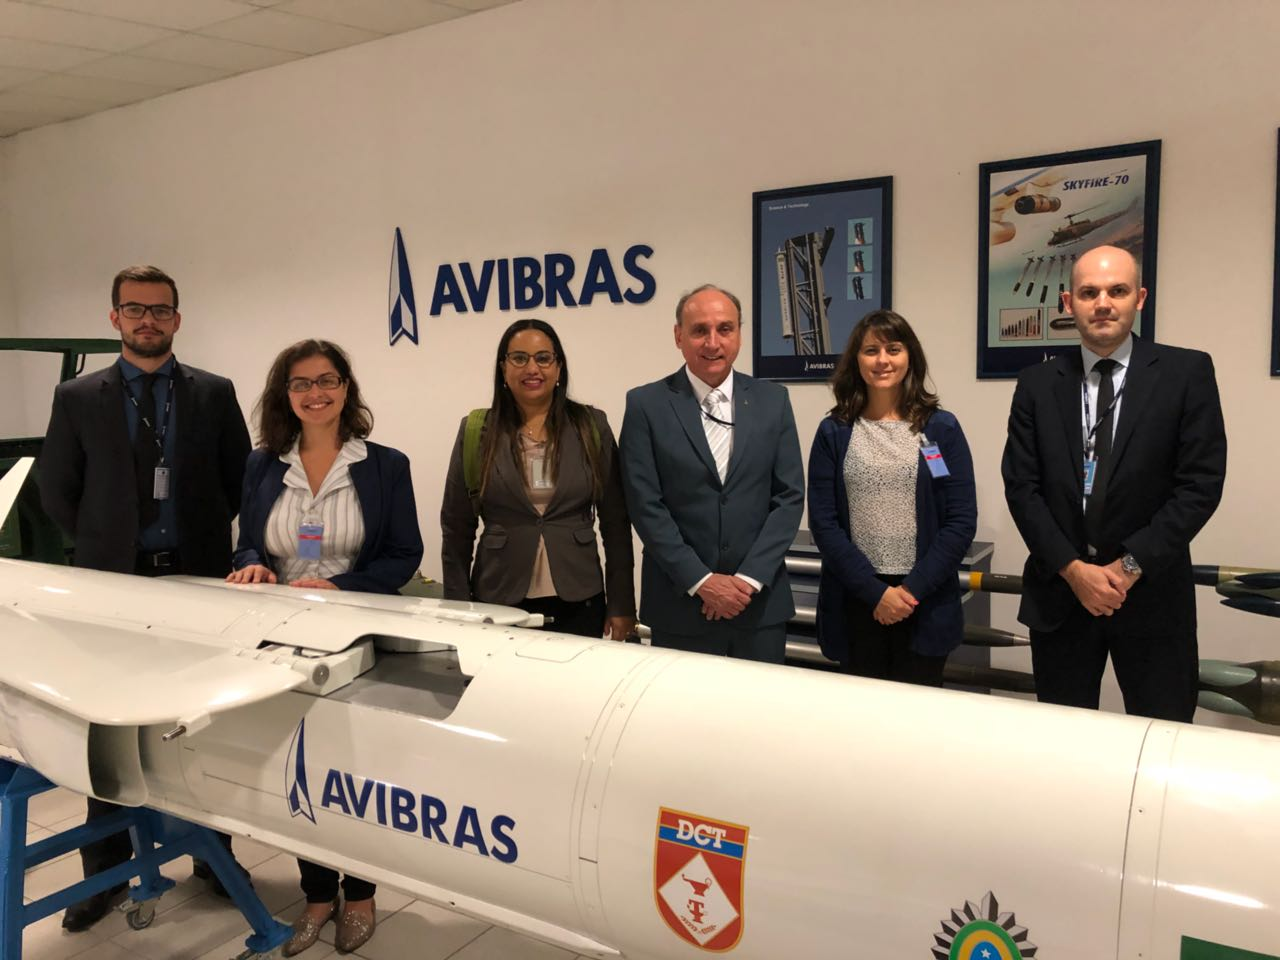 Space Program: Avibras visited by AEB delegation